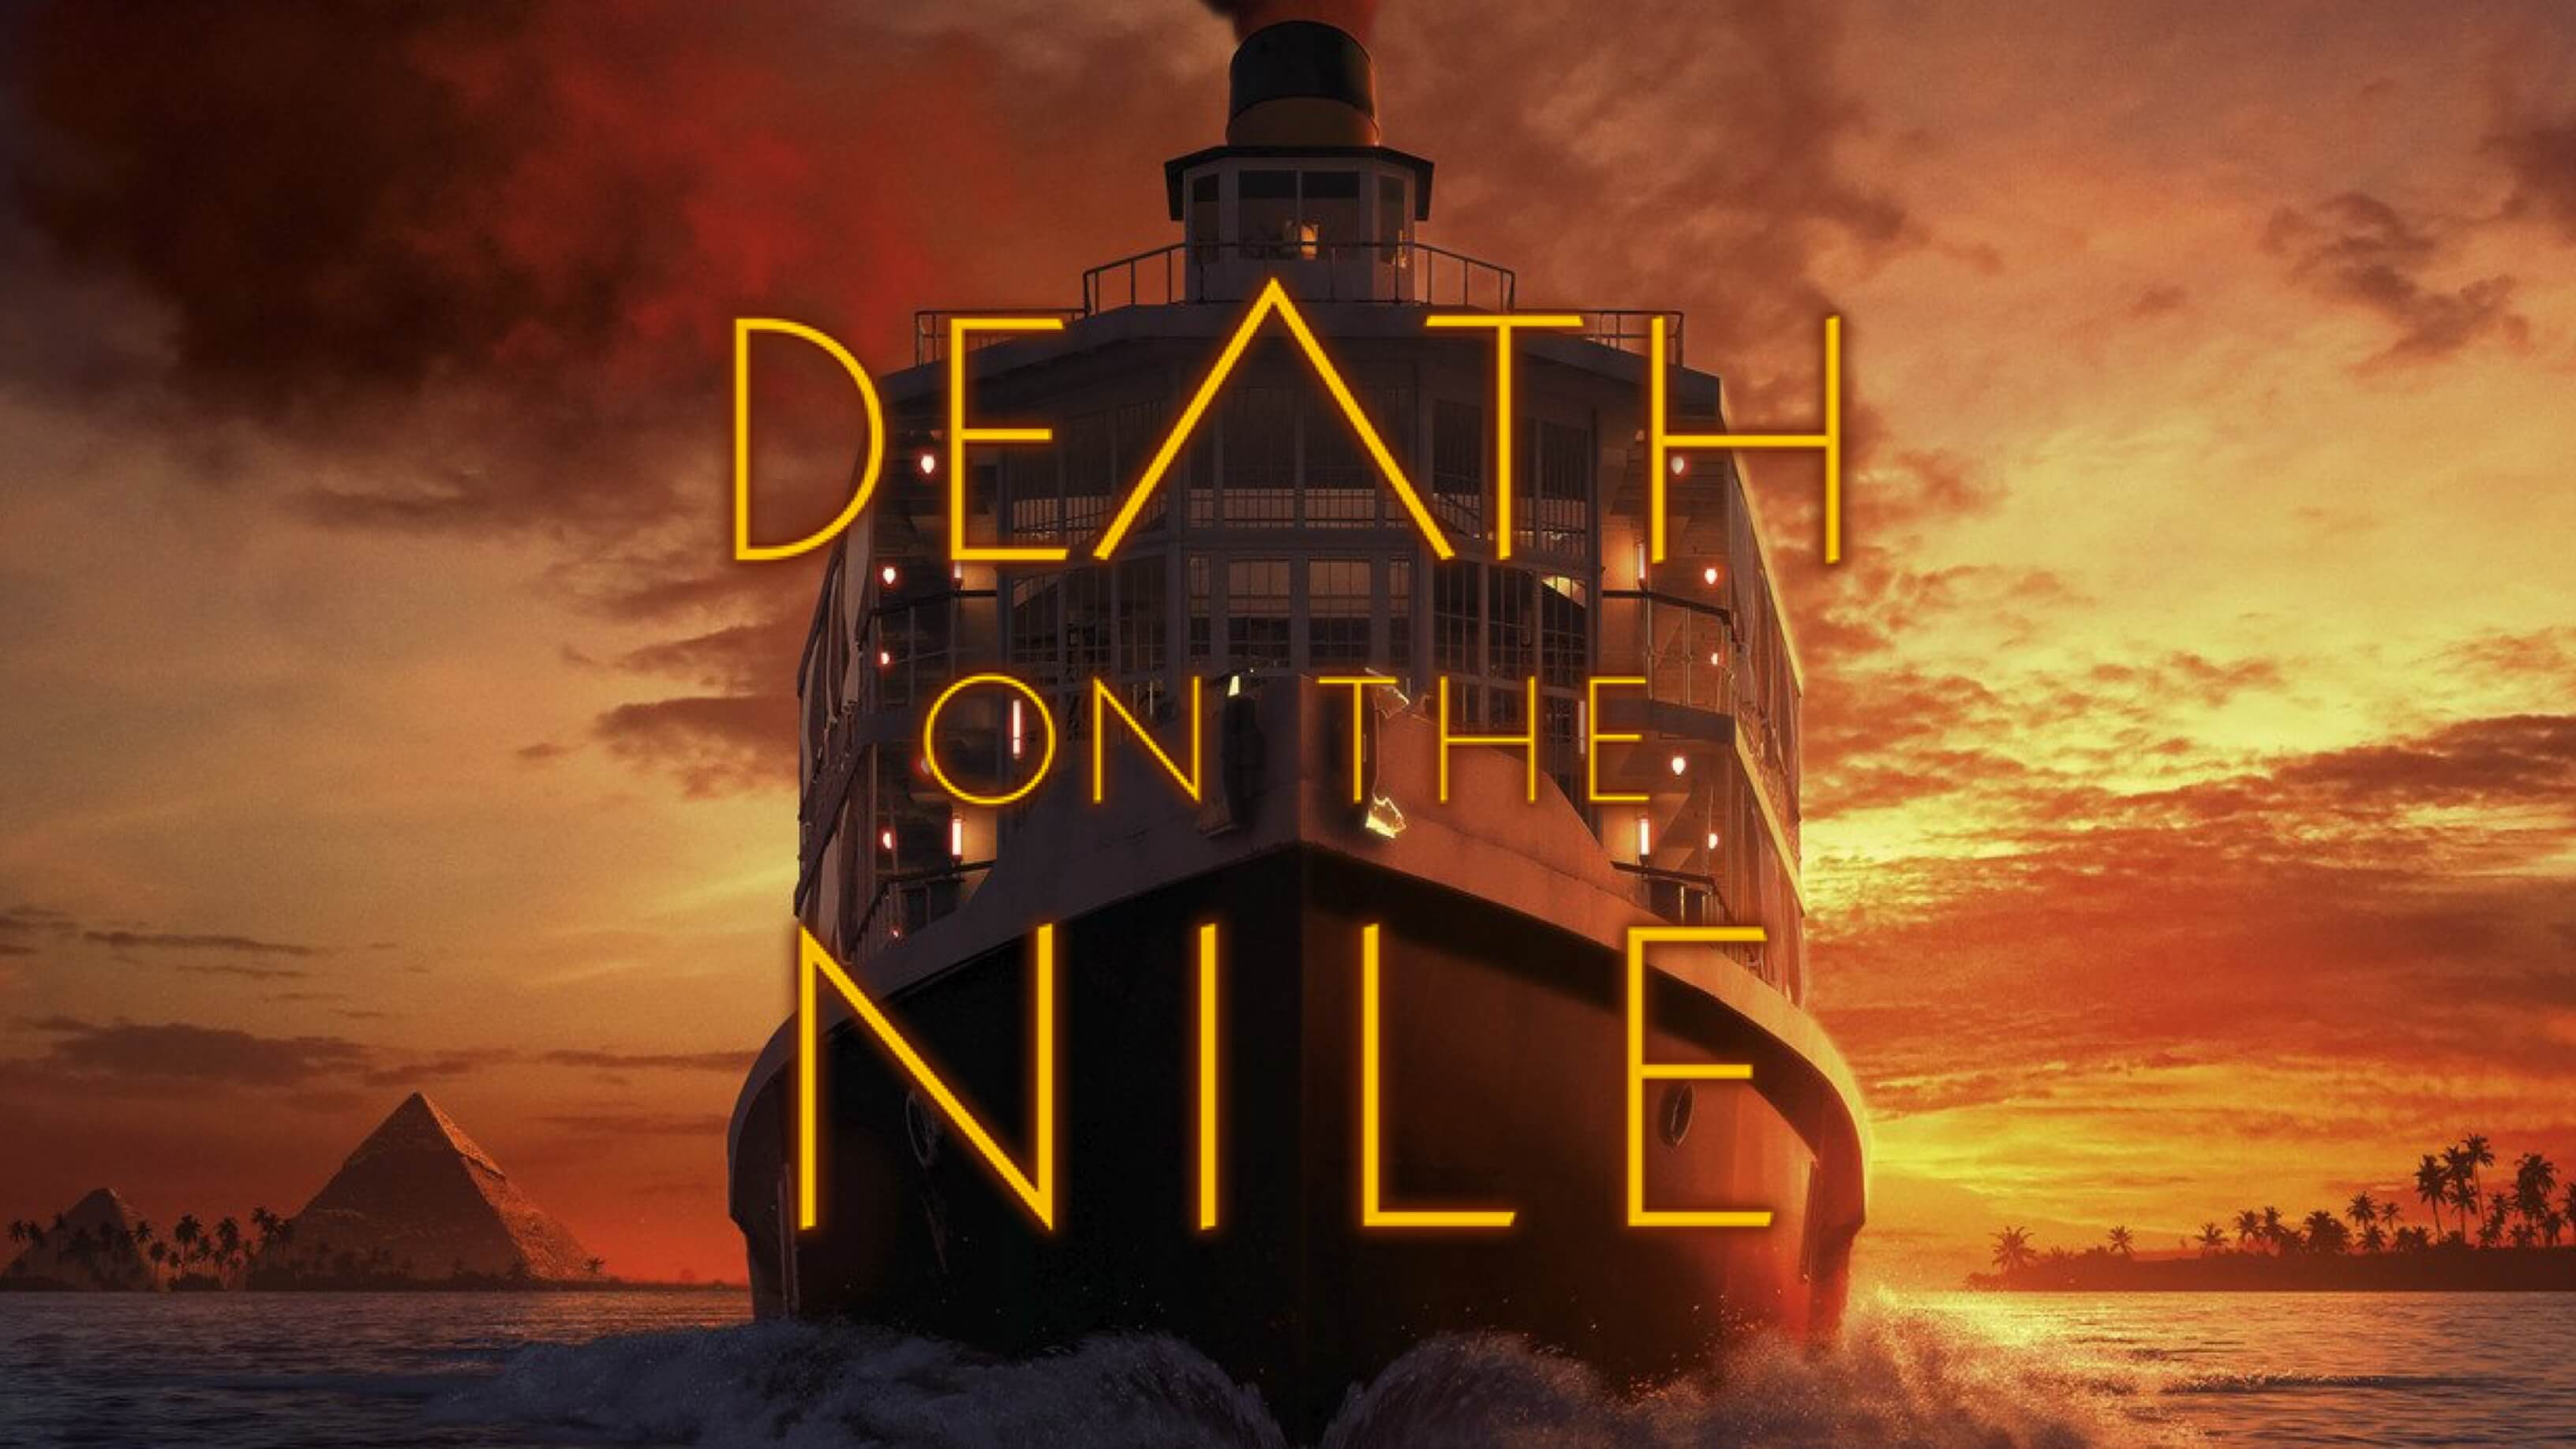 First Trailer and Poster For 'Death on the Nile' Have Debuted -